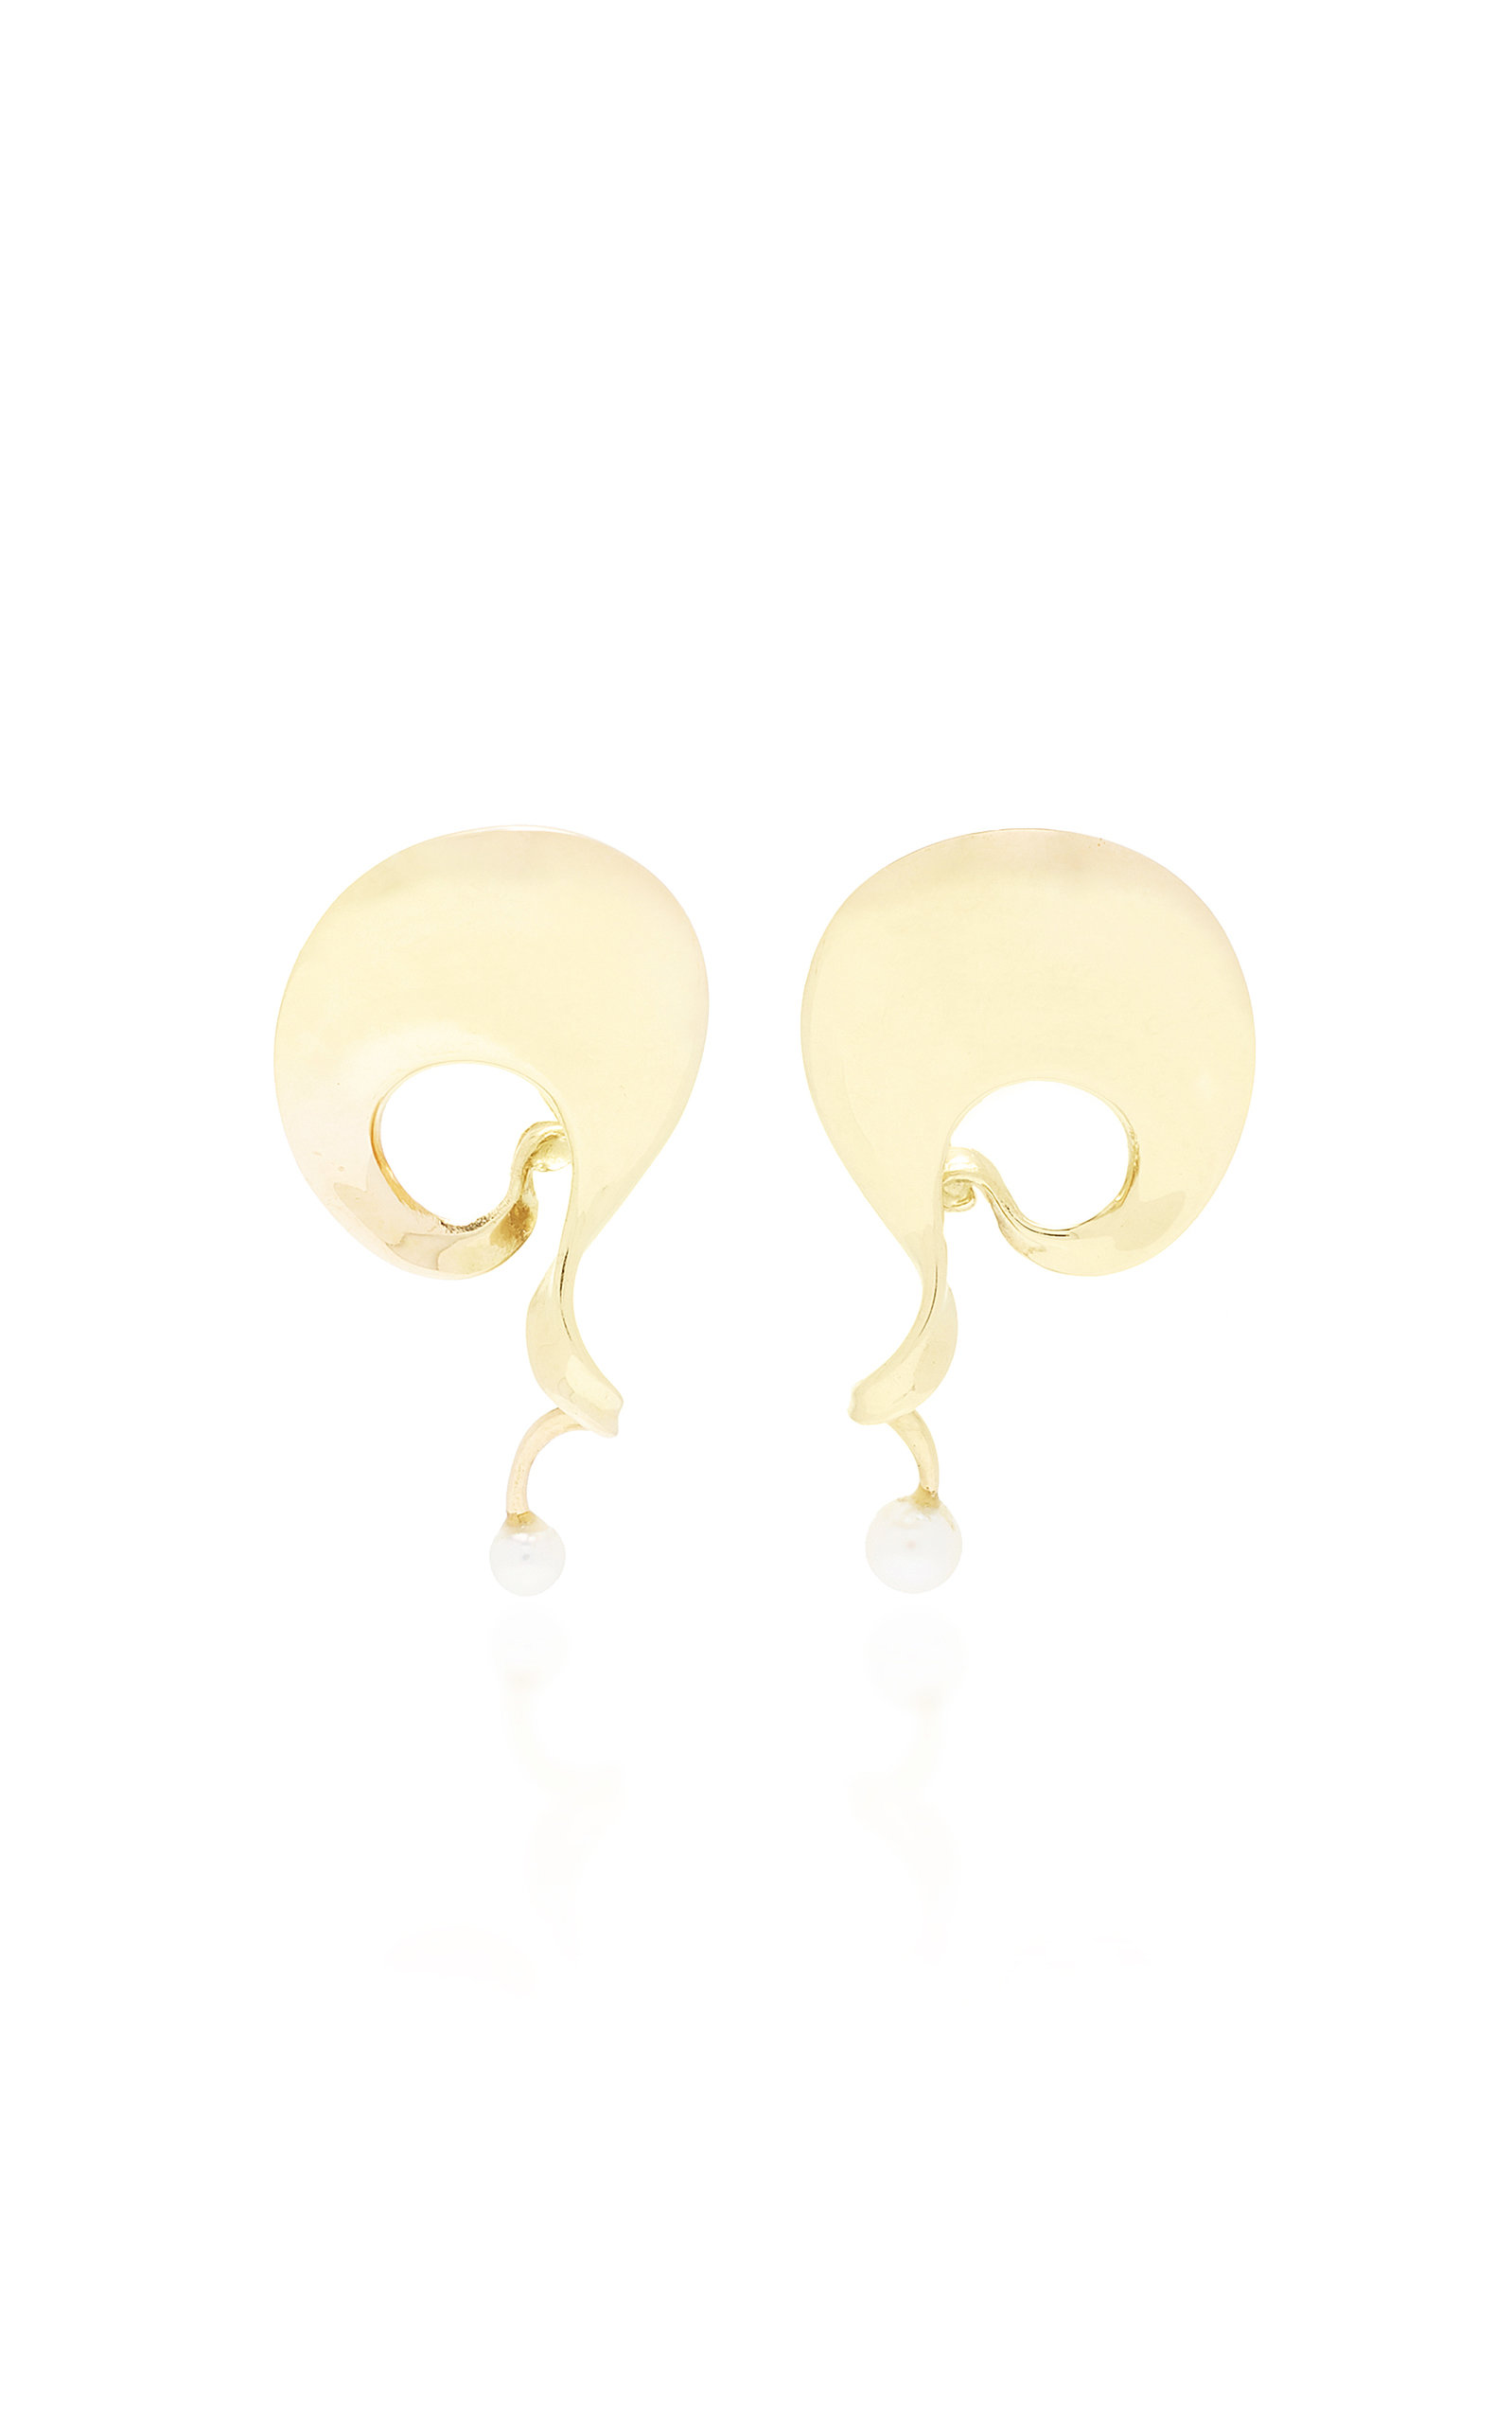 LIMITED EDITION 18K GOLD AND PEARL MOBIUS DESIGN EARRINGS BY VIVIANNA TORUN FOR GEORG JENSEN C. 1970